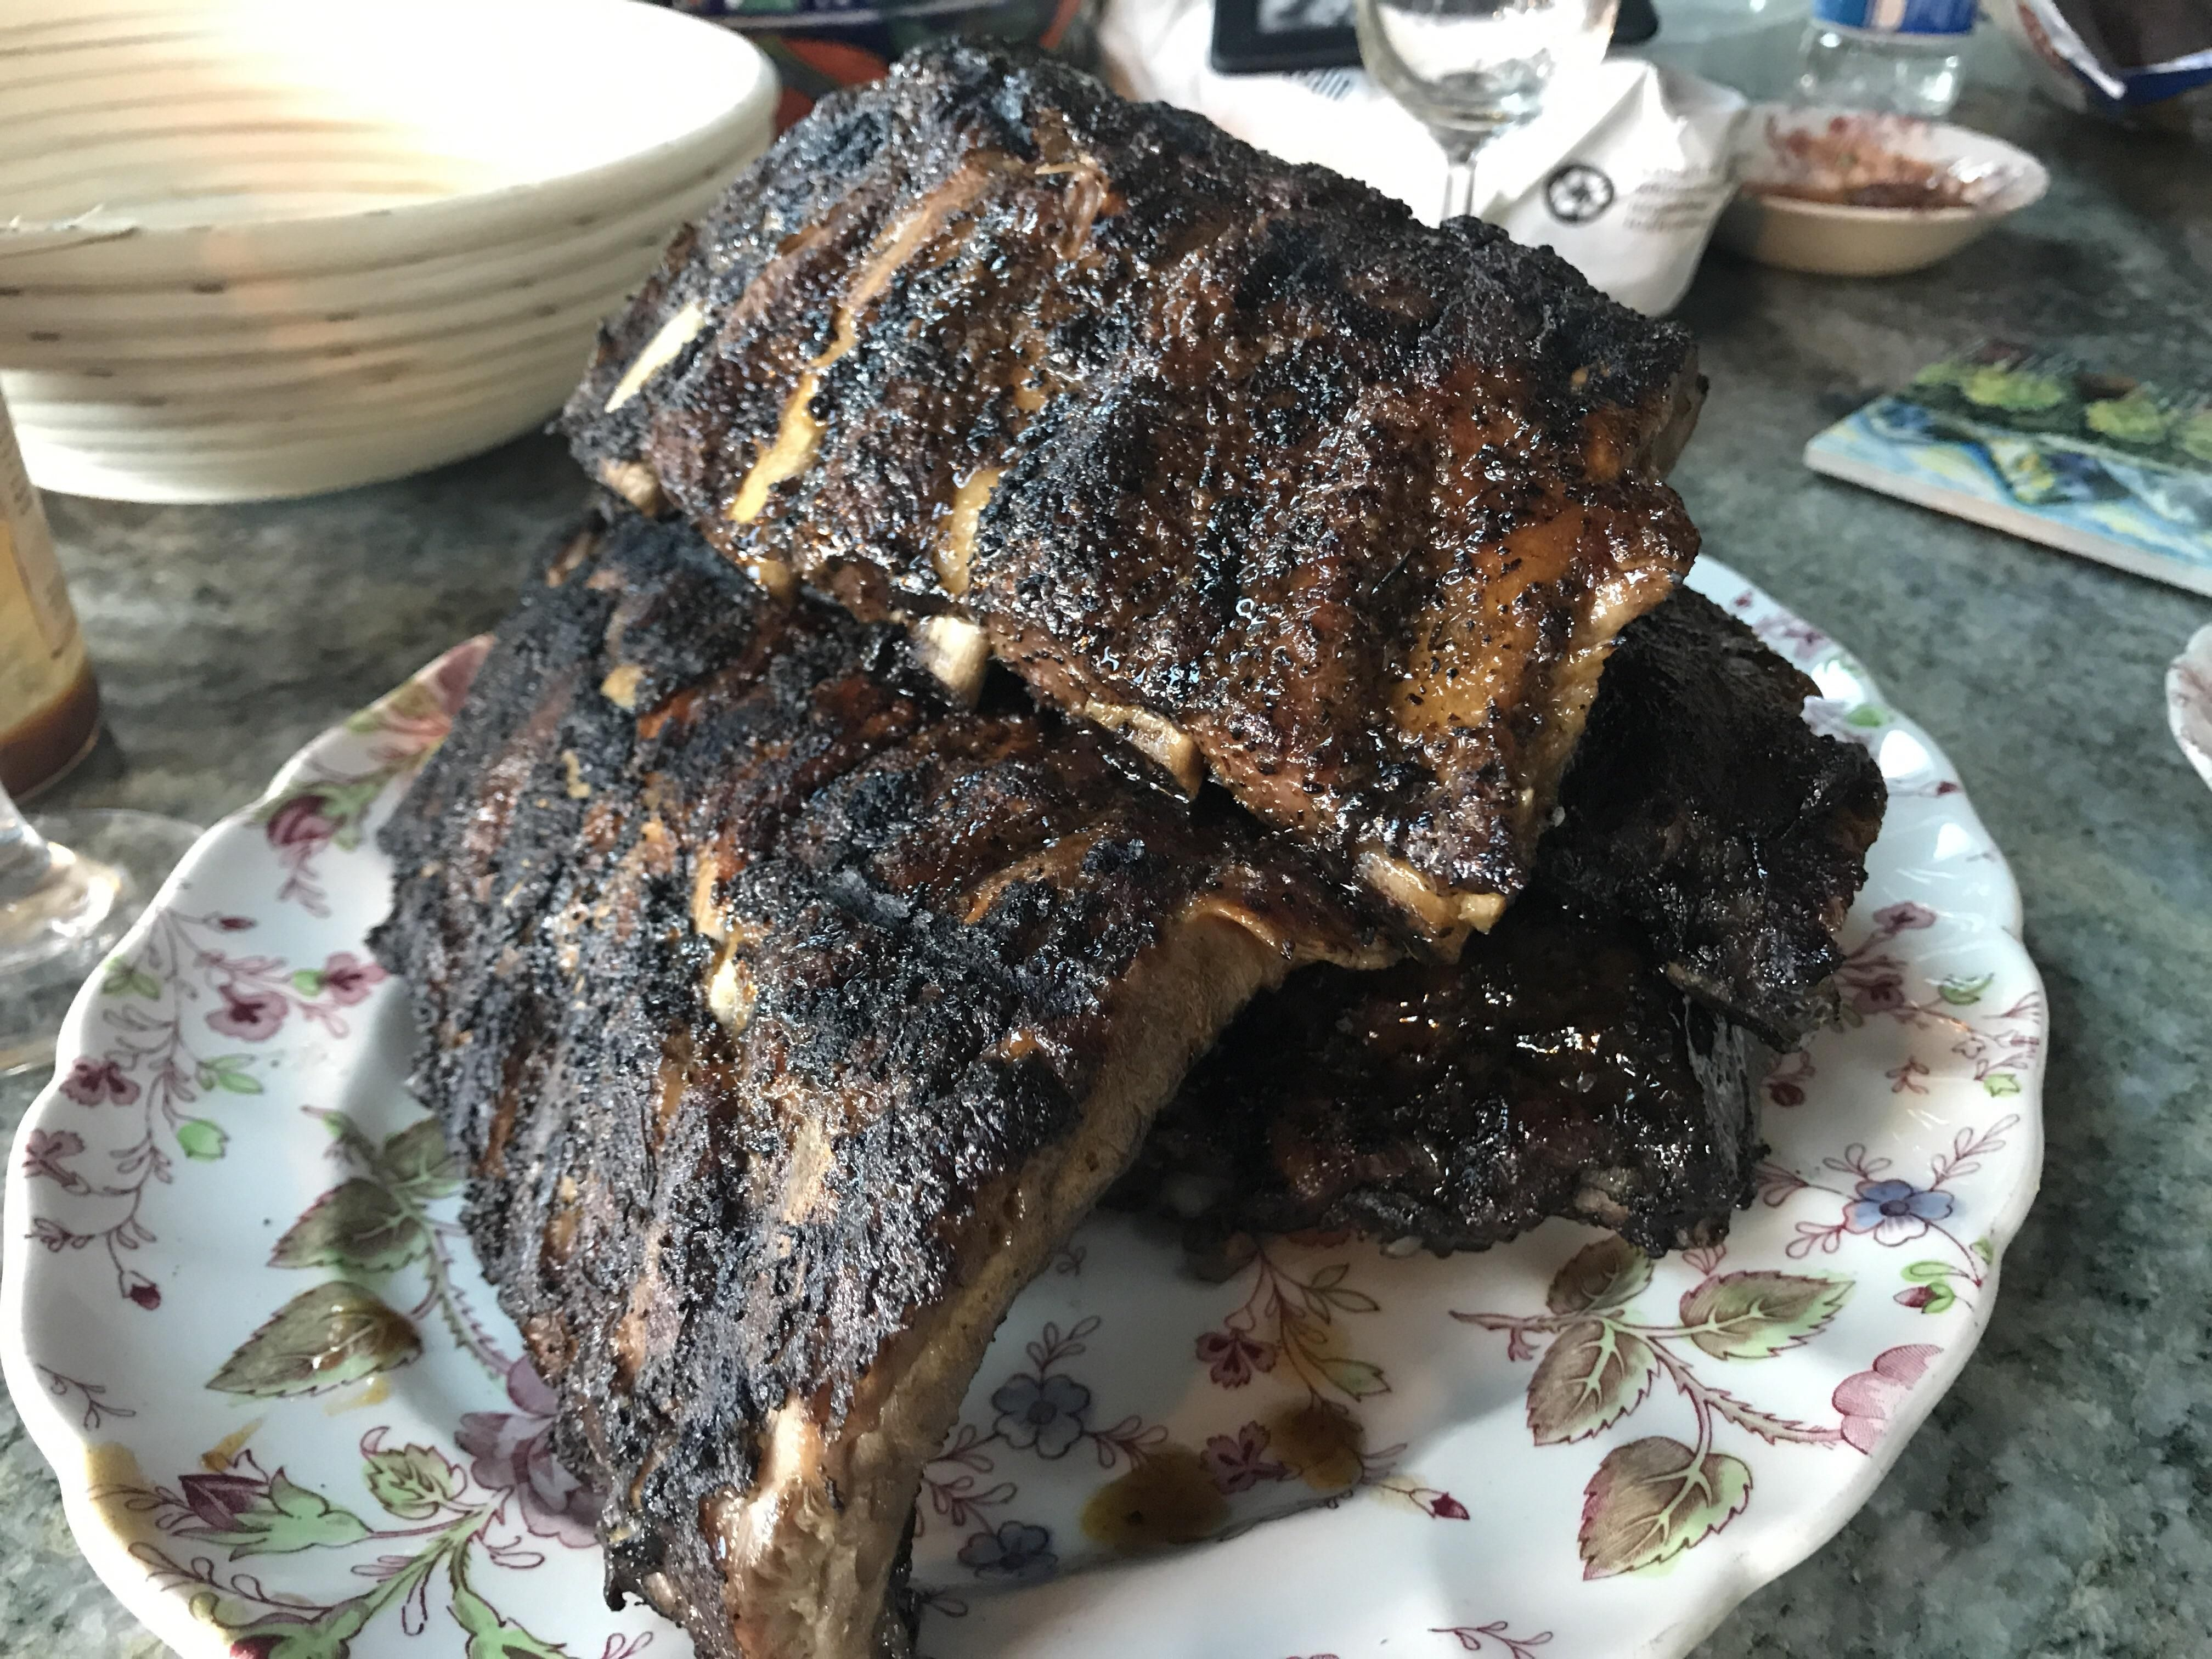 Homemade Grilled And Smoked Pork Ribs Recipes Food Cooking Delicious Foodie Foodrecipes Cook Recipe Health Smoked Pork Ribs Food Pork Ribs